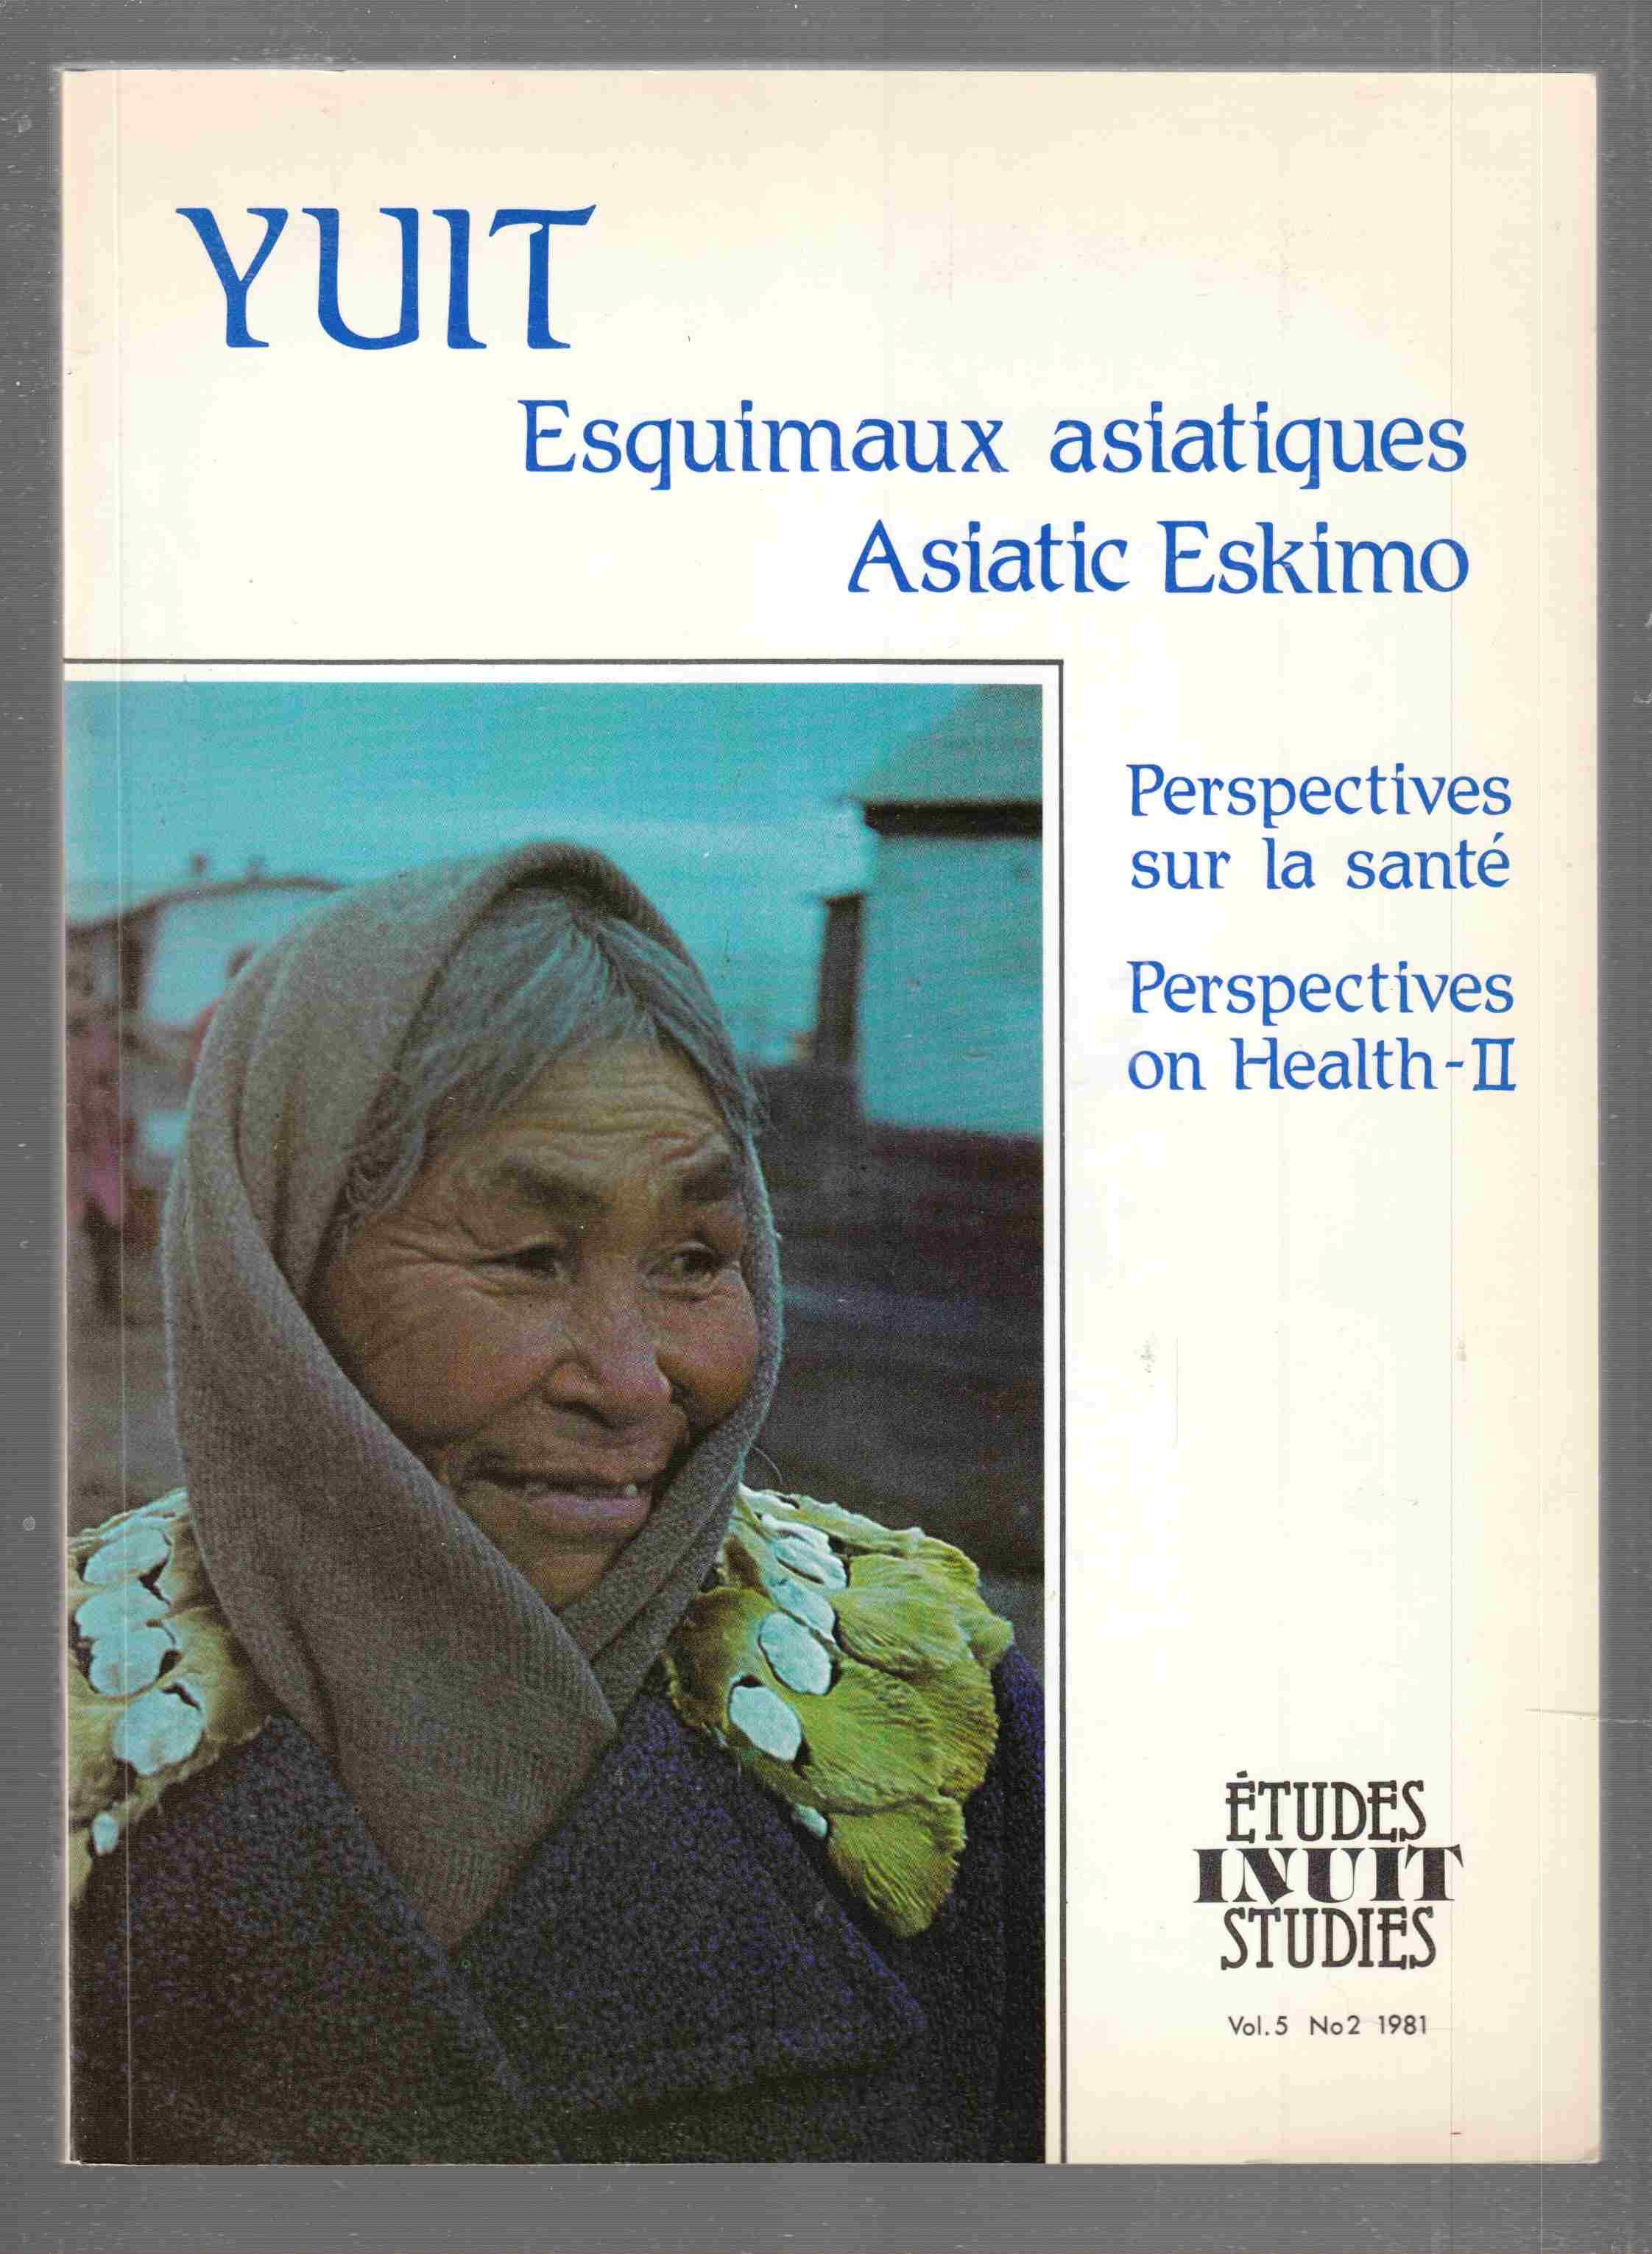 Image for Etudes Inuit Studies Volume 5 Numero 2 / 1981 / Volume 5 Number 2